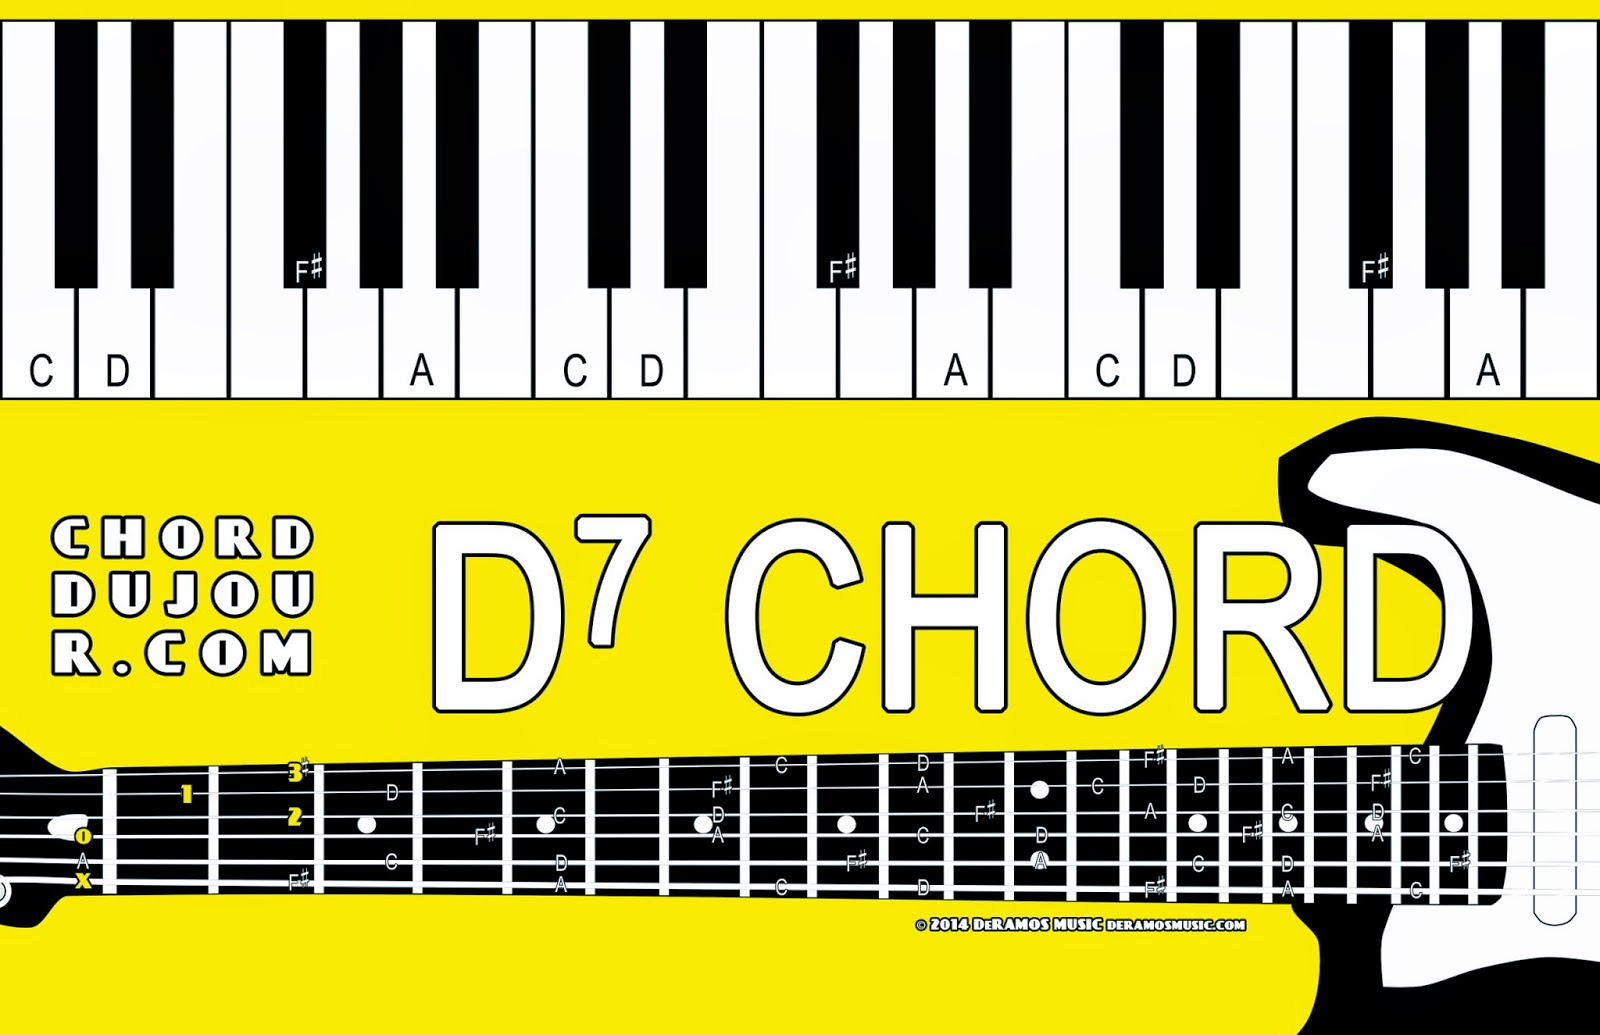 Chord du jour chord deux jour challenge bm7 and d7 guitarists play the chord its a d chord with a c note hexwebz Images